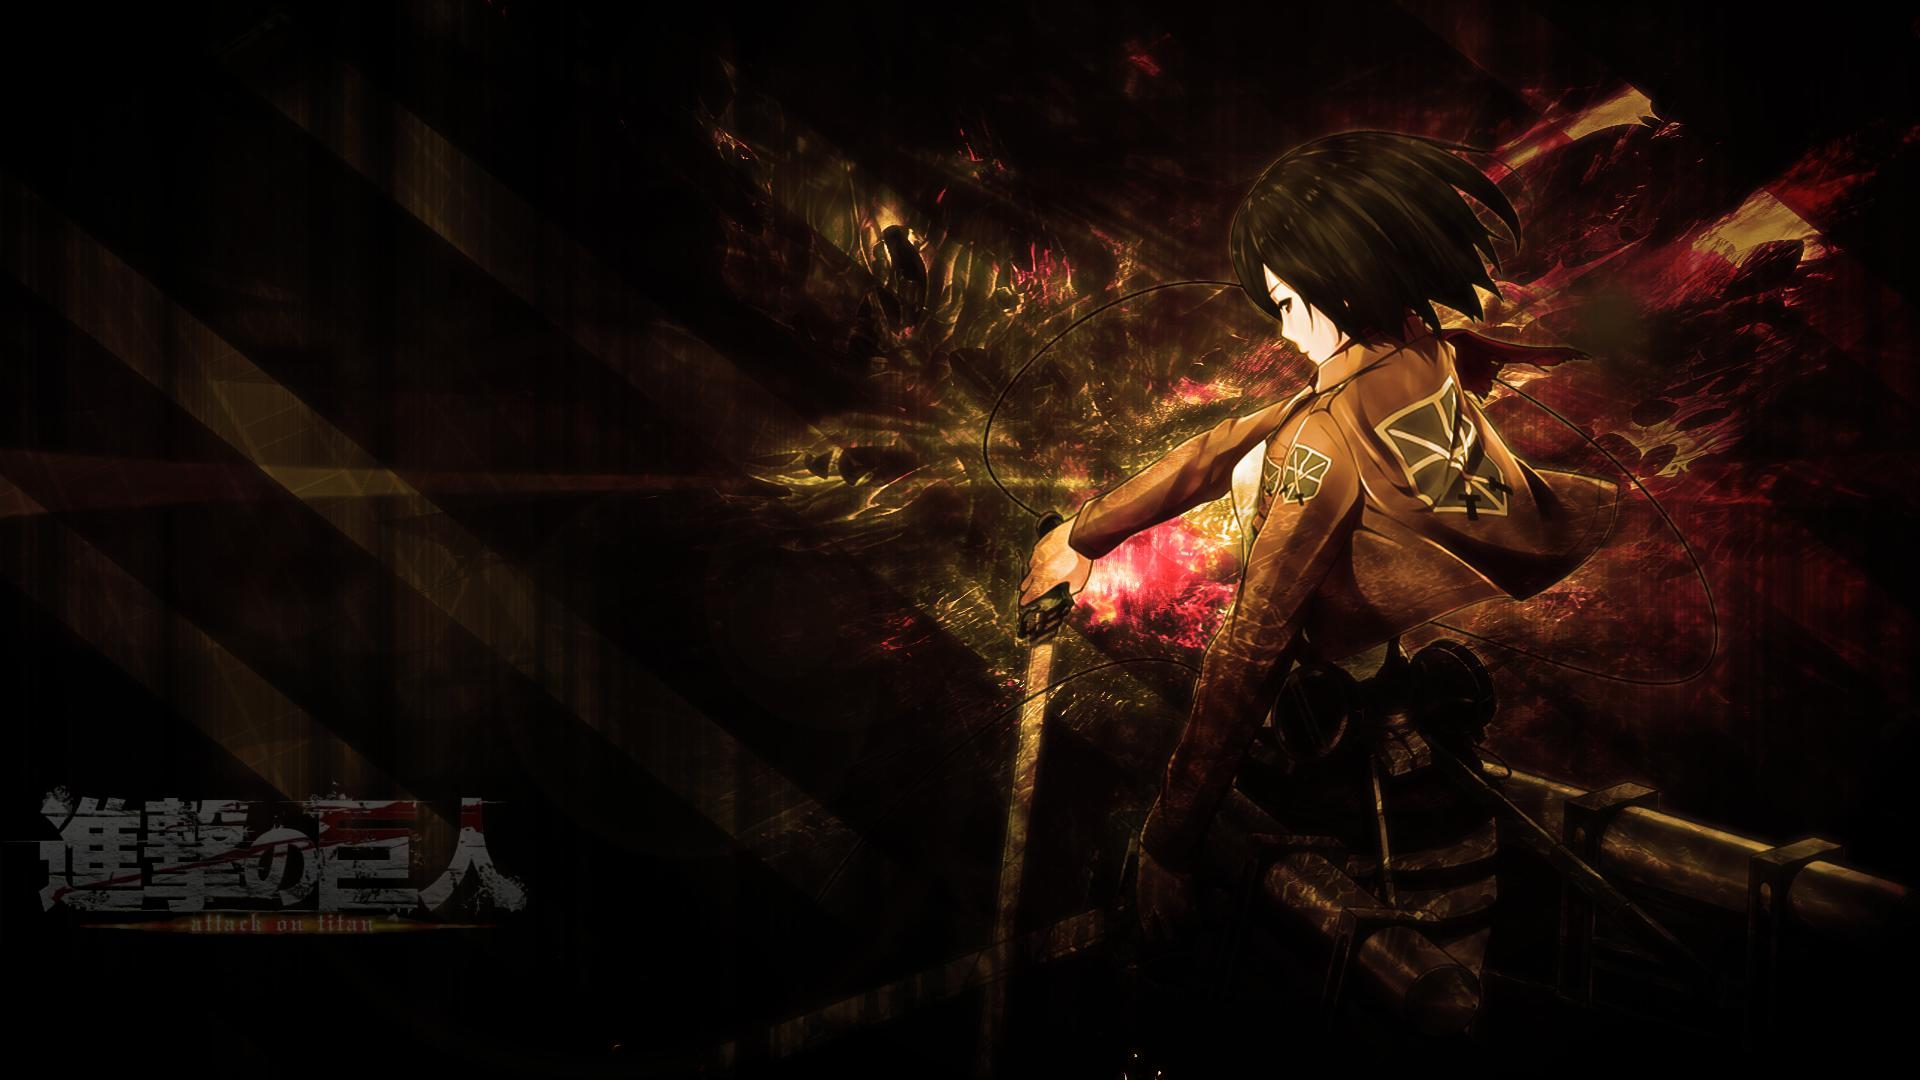 Wonderful Wallpaper High Quality Attack On Titan - cneukcn_by_skeptec-d6iajpu1  Perfect Image Reference_23826.jpg